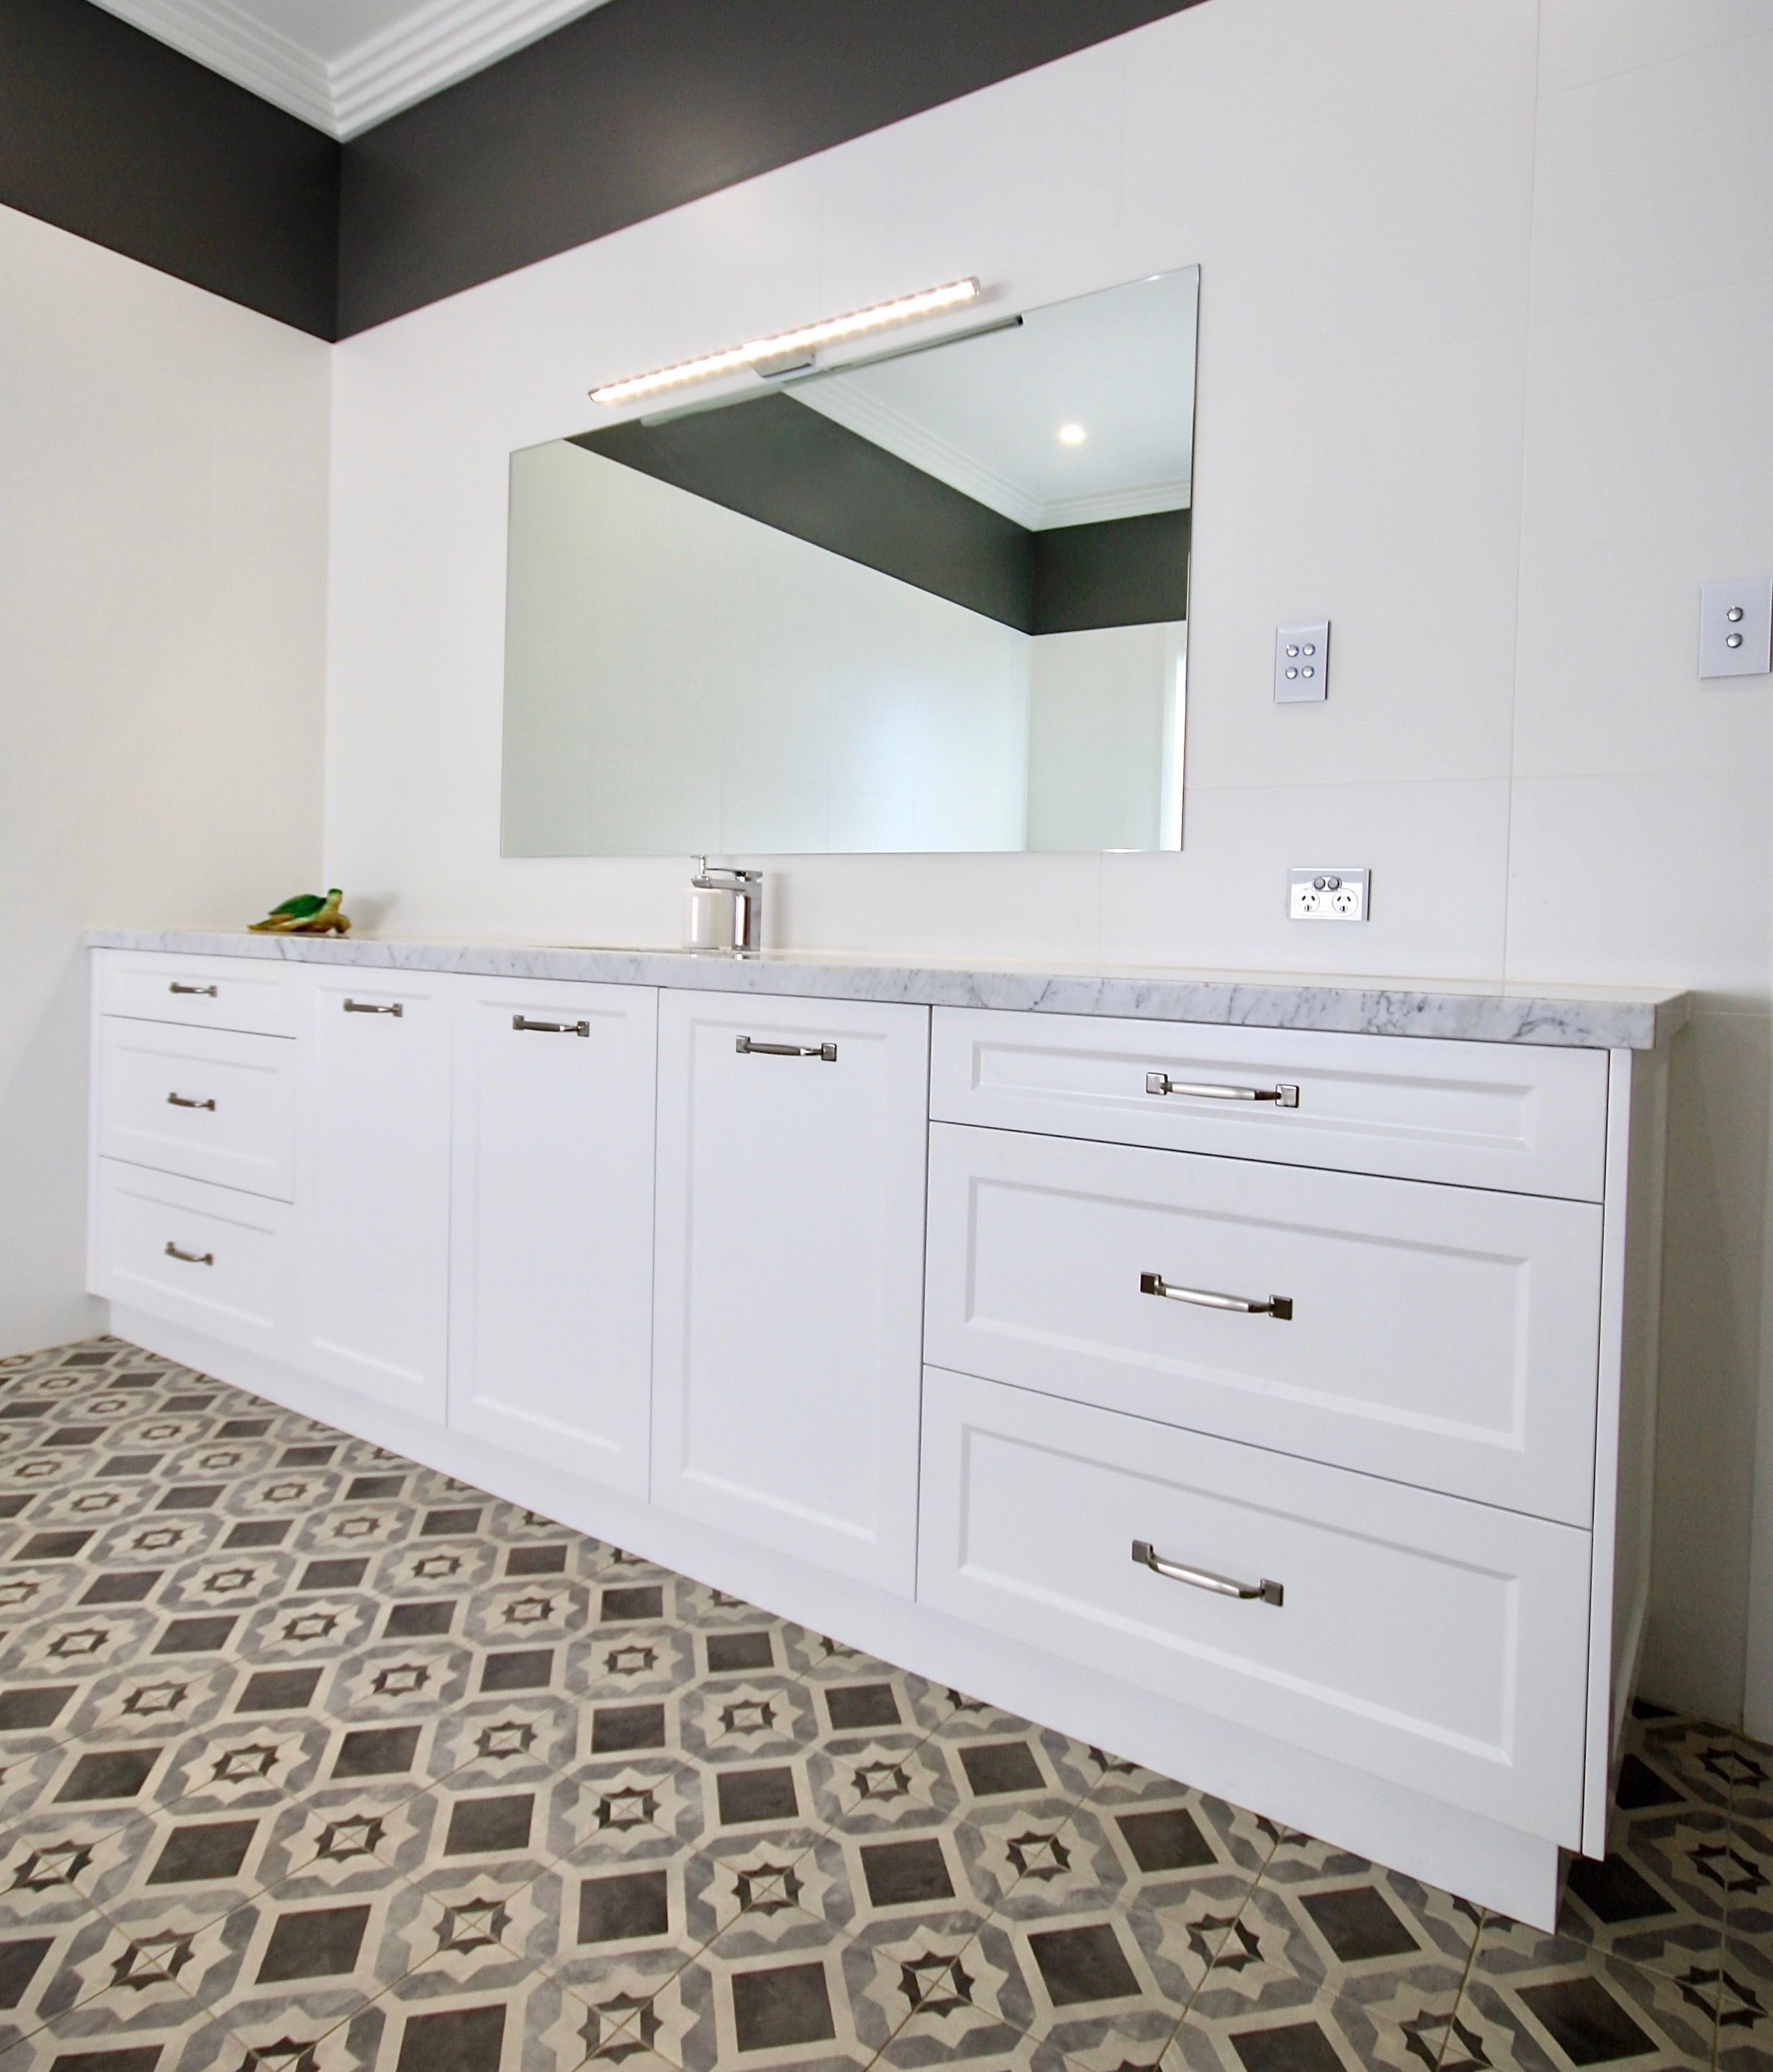 VANITY IDEAS We custom designed and manufactured this